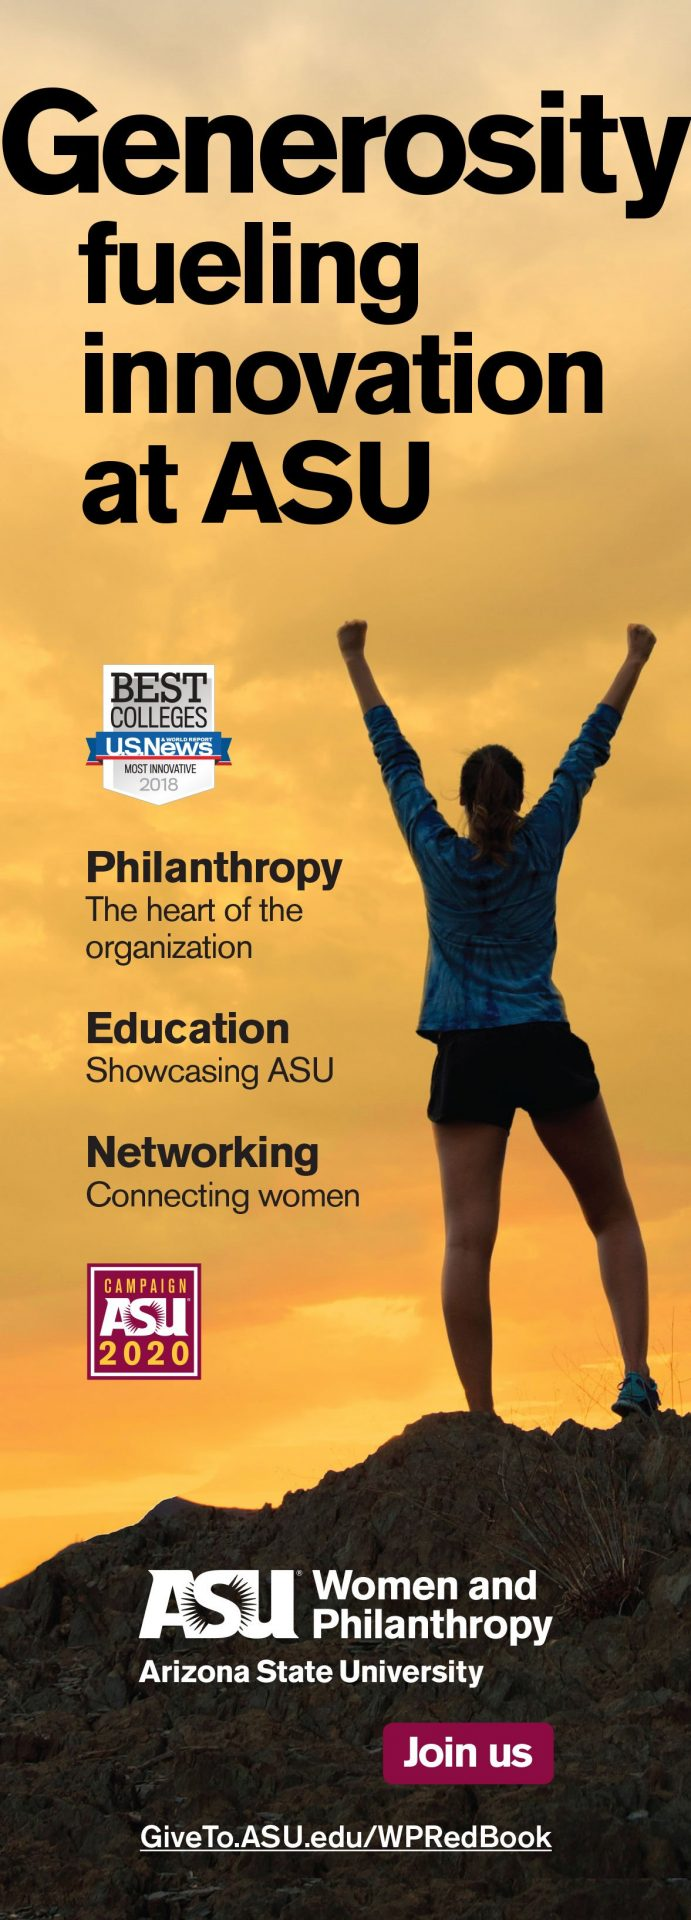 ASU Women and Philanthropy RedBook ad